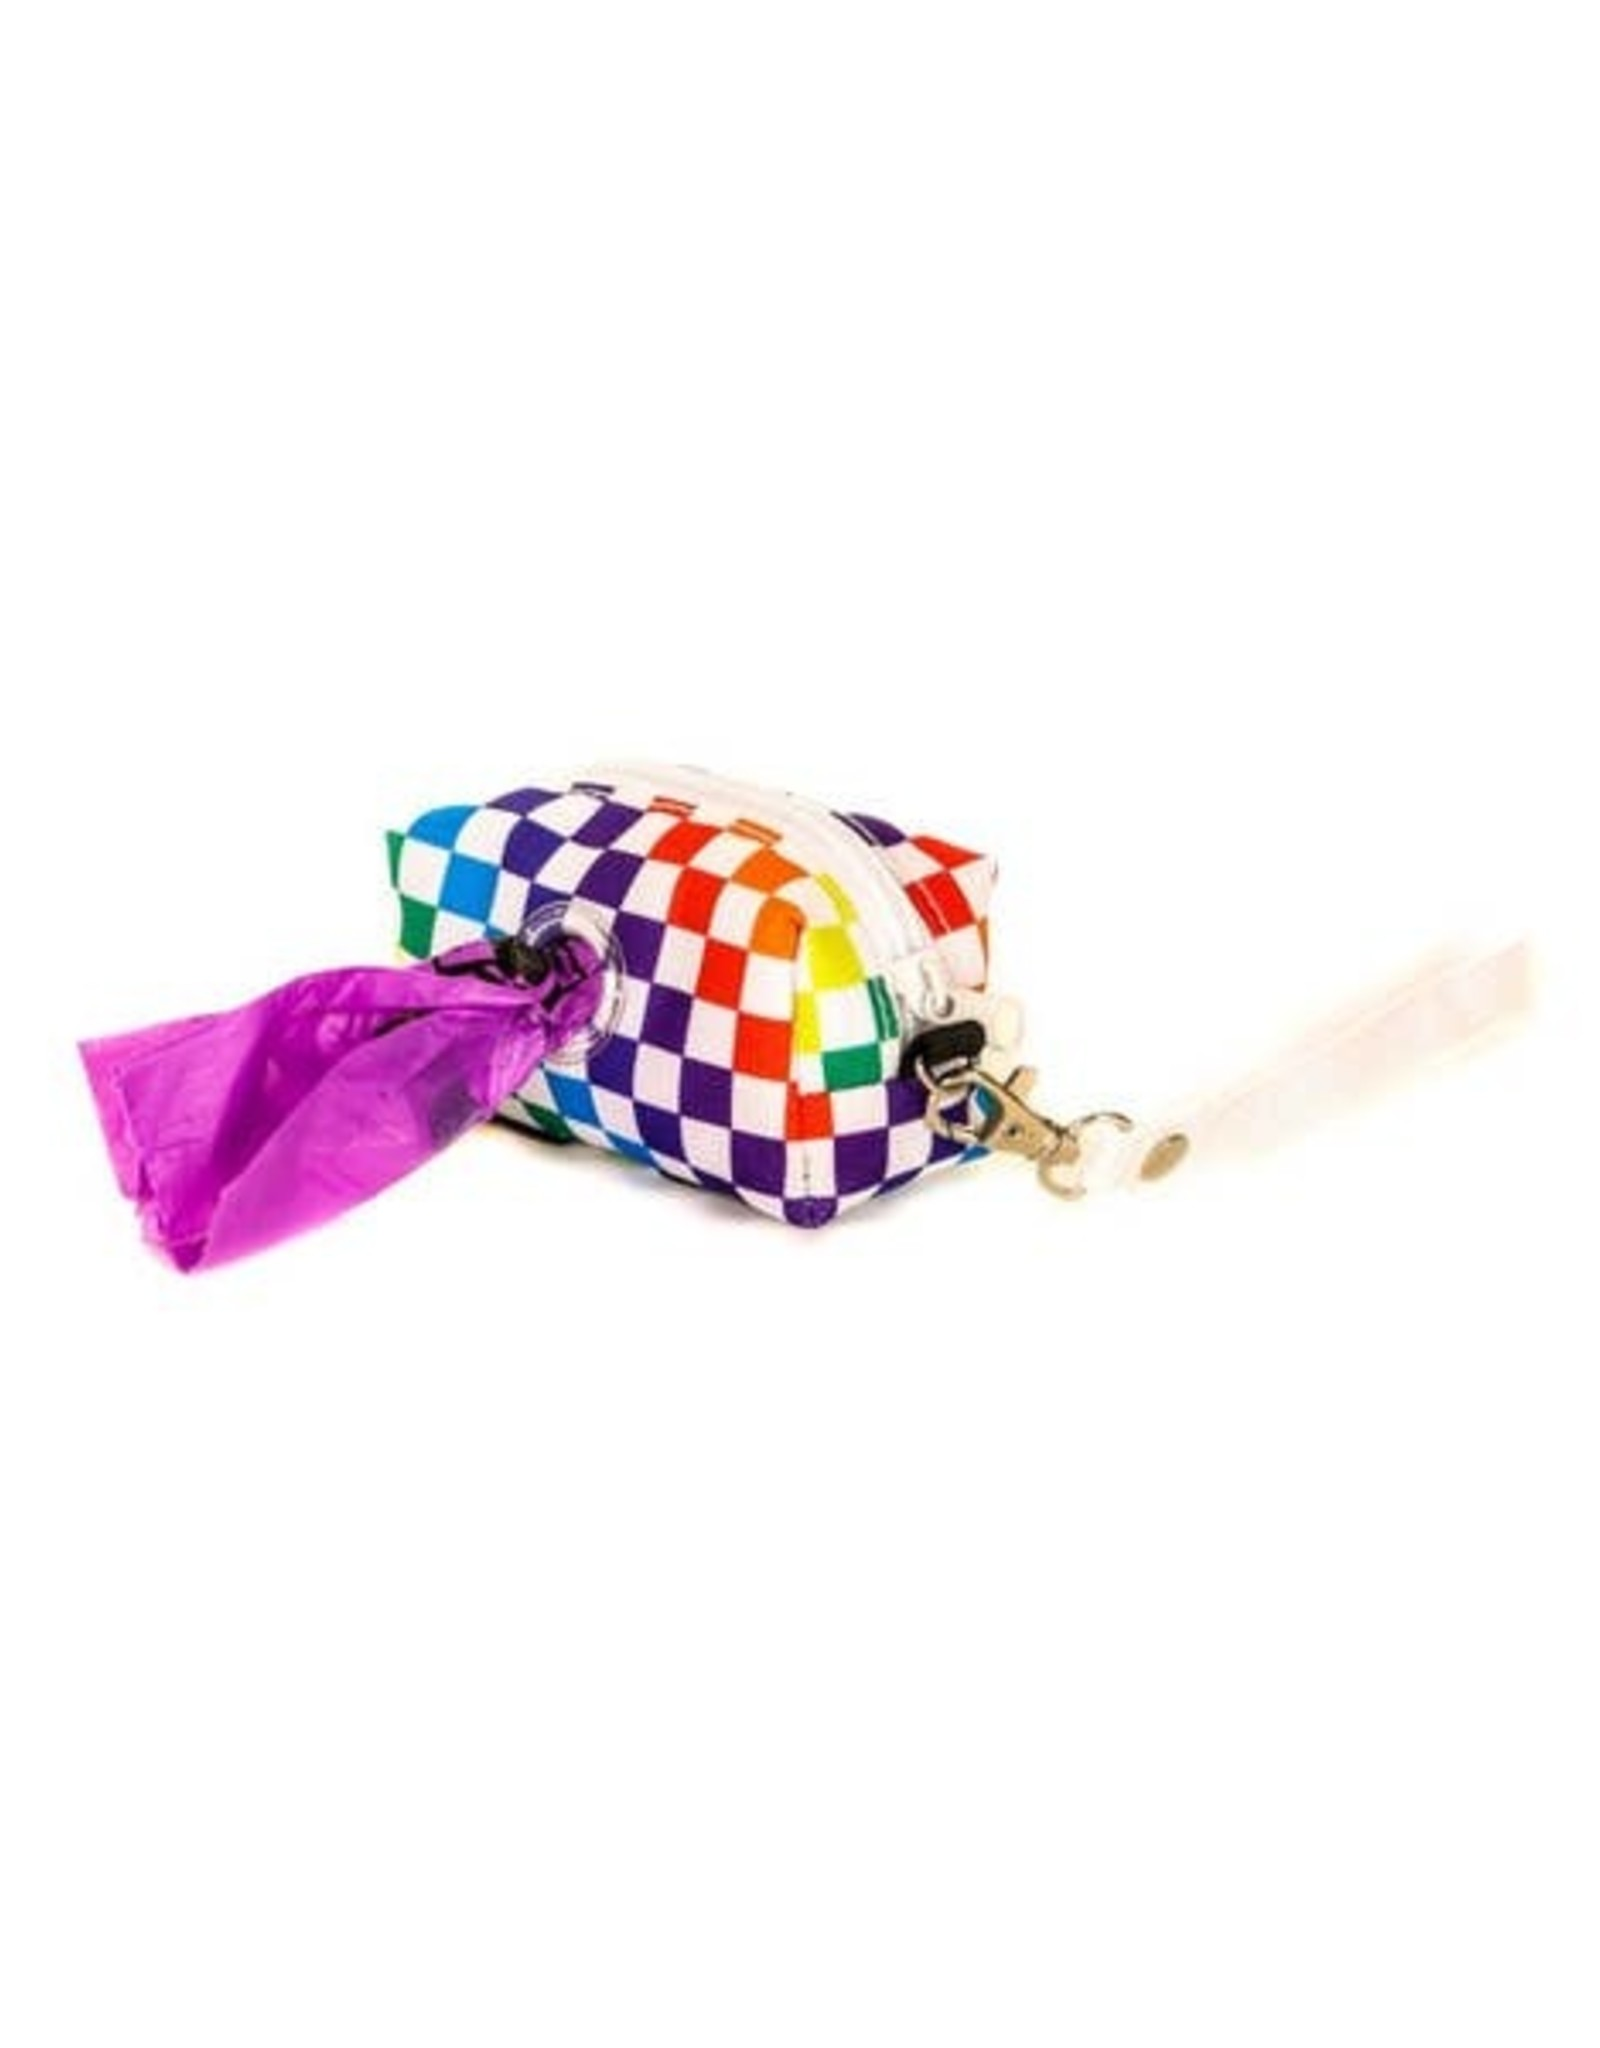 FYDELITY INDY RAINBOW CHECKERED DOGGIE POOPYCUTE BAG